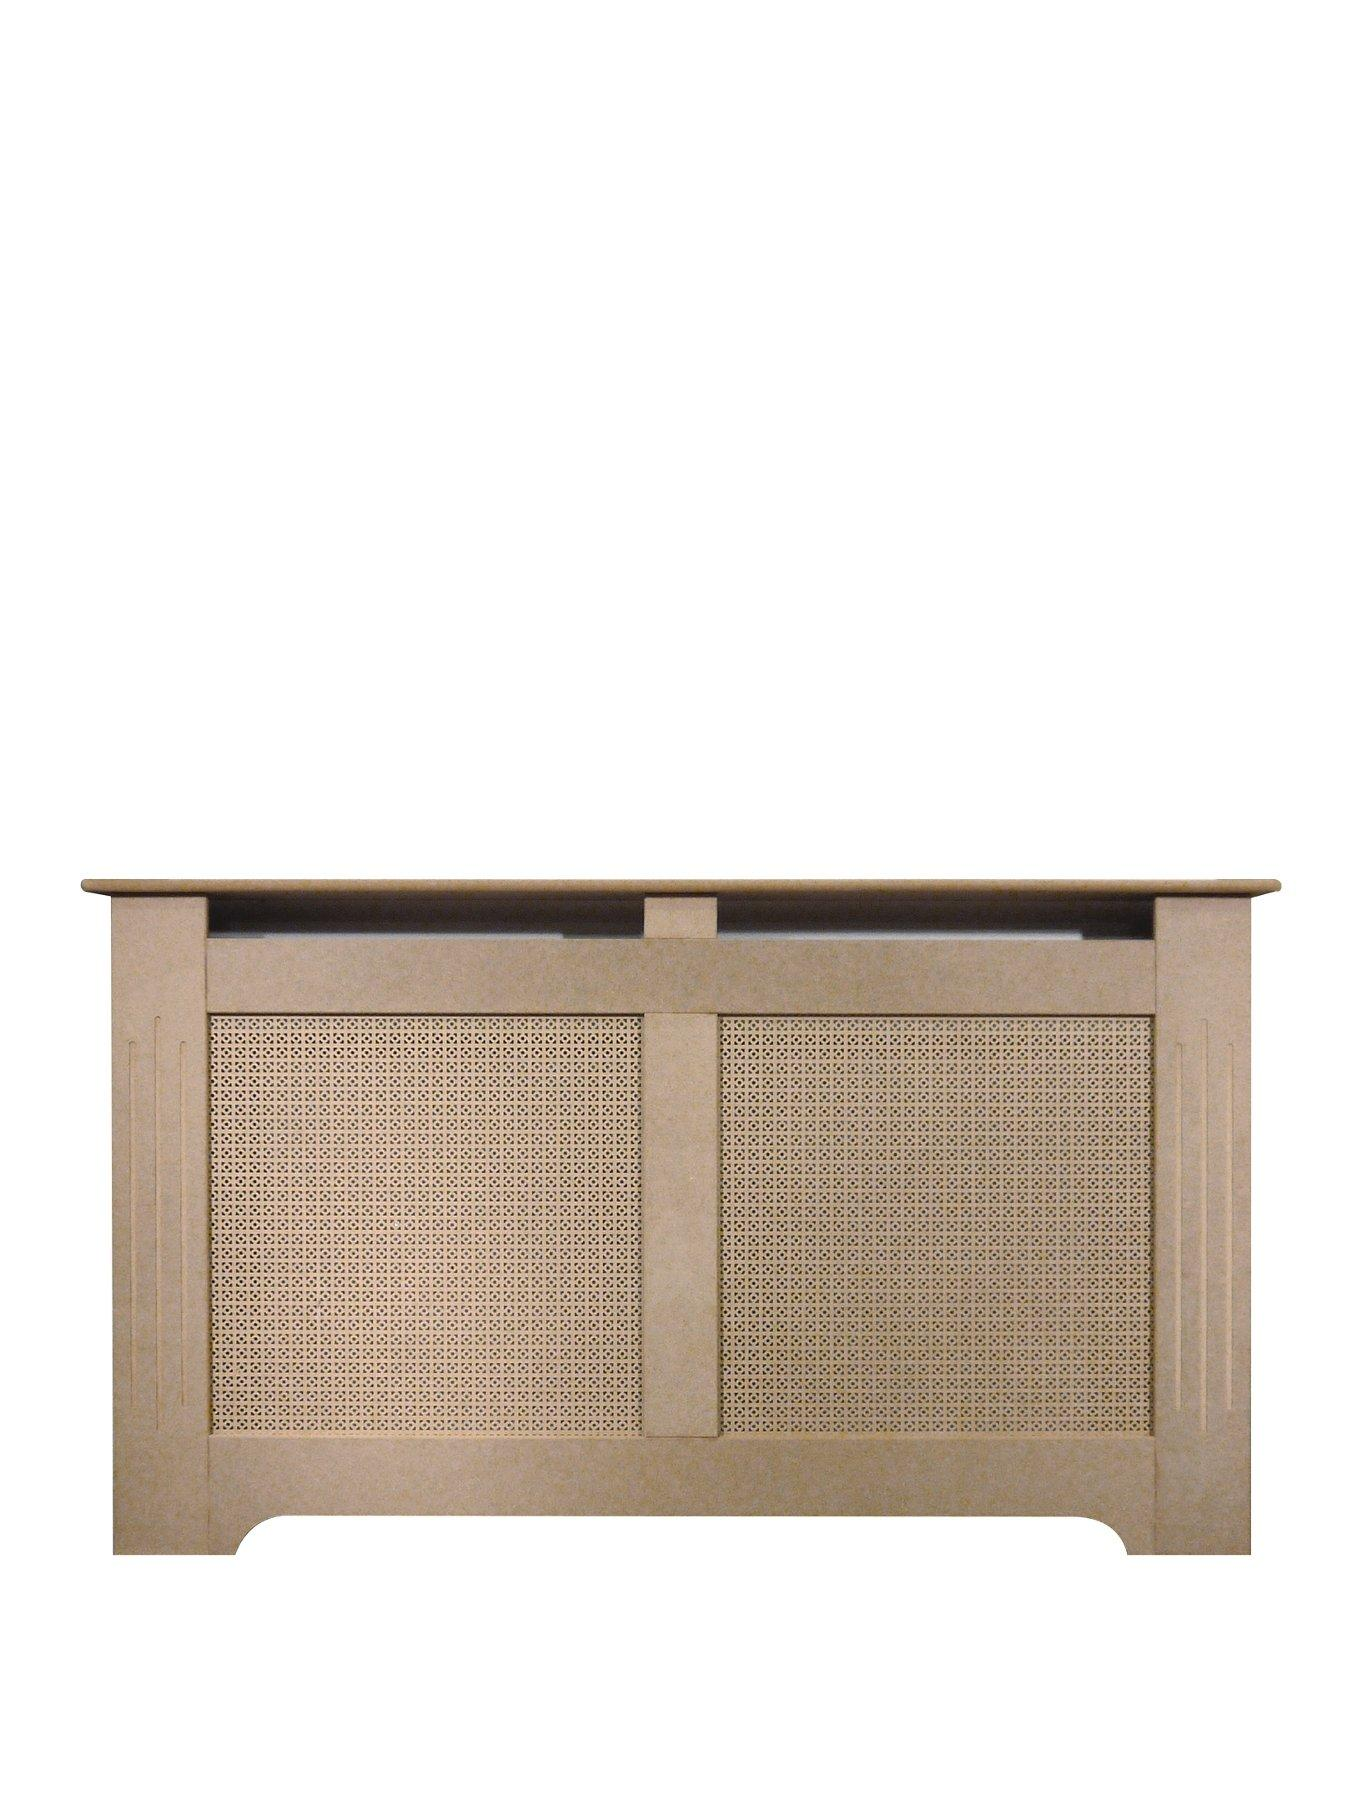 Compare prices for Adam Fire Surrounds 160Cm Unfinished Mdf Radiator Cover